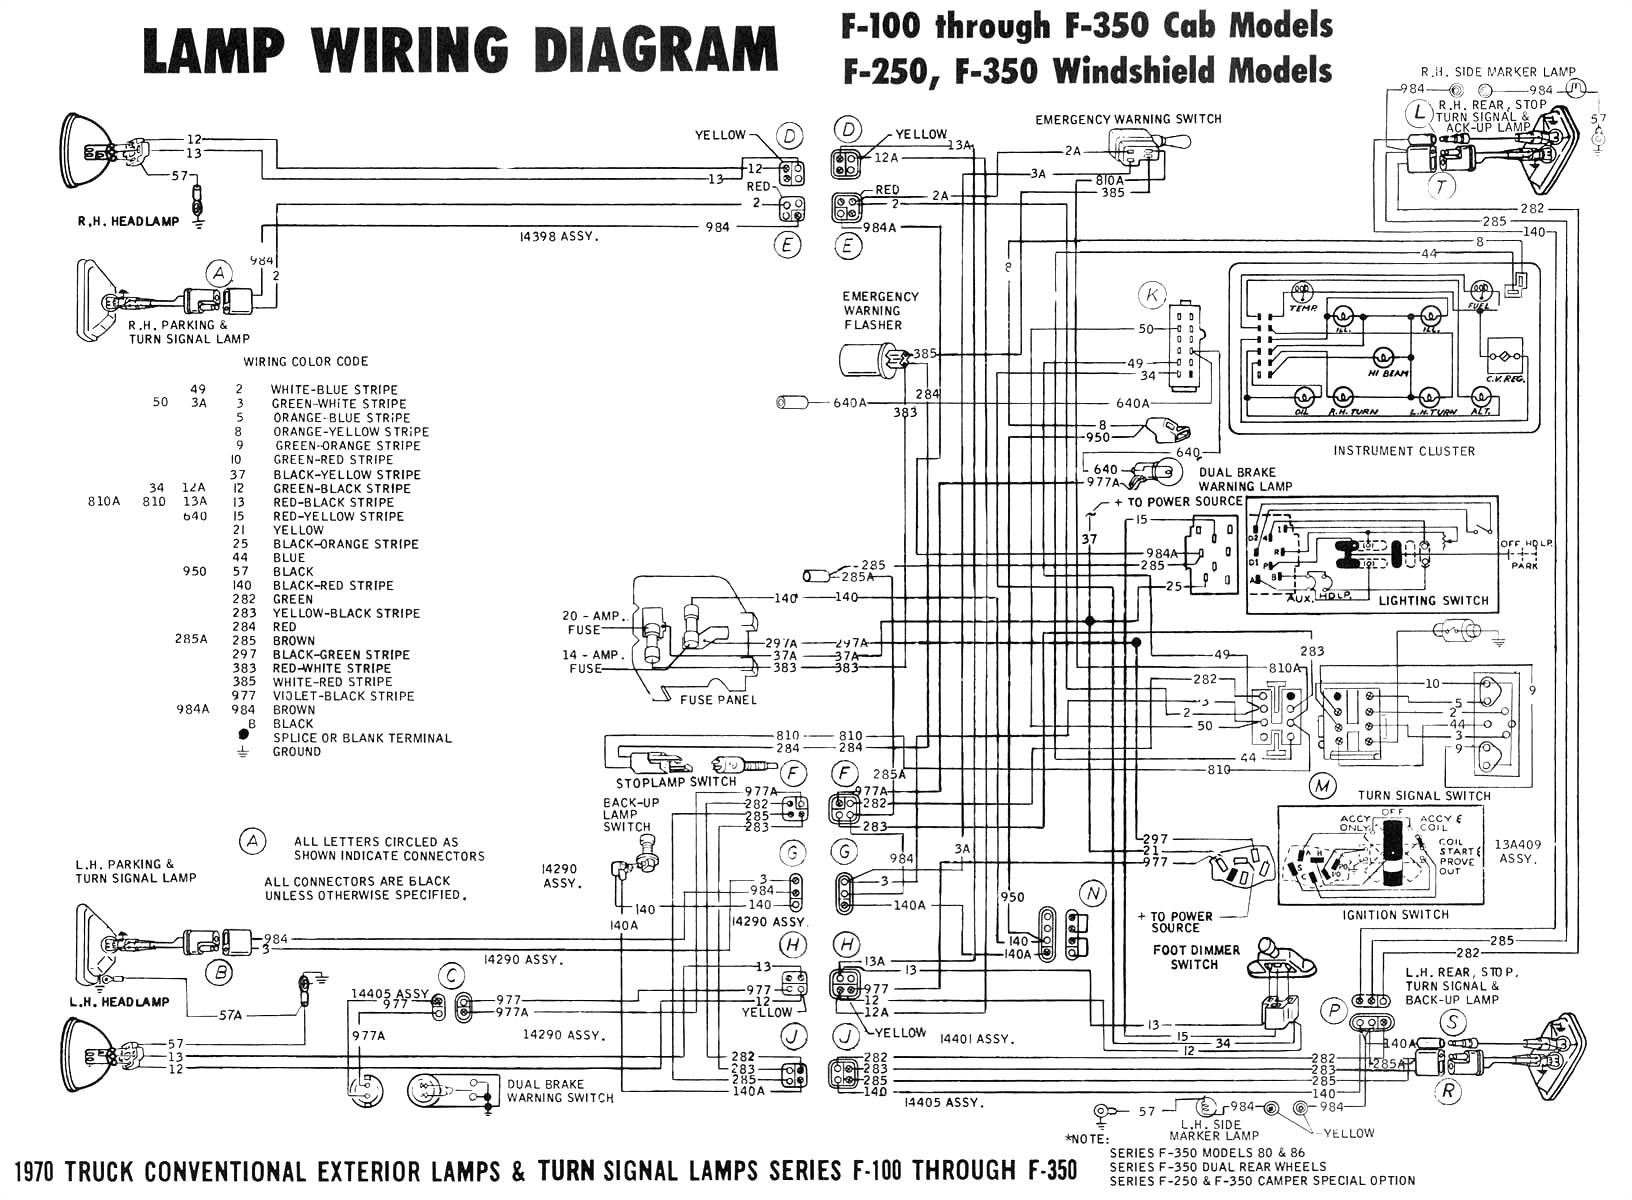 2005 ford e250 wiring diagram wiring diagram expert 2005 ford e250 wiring diagram